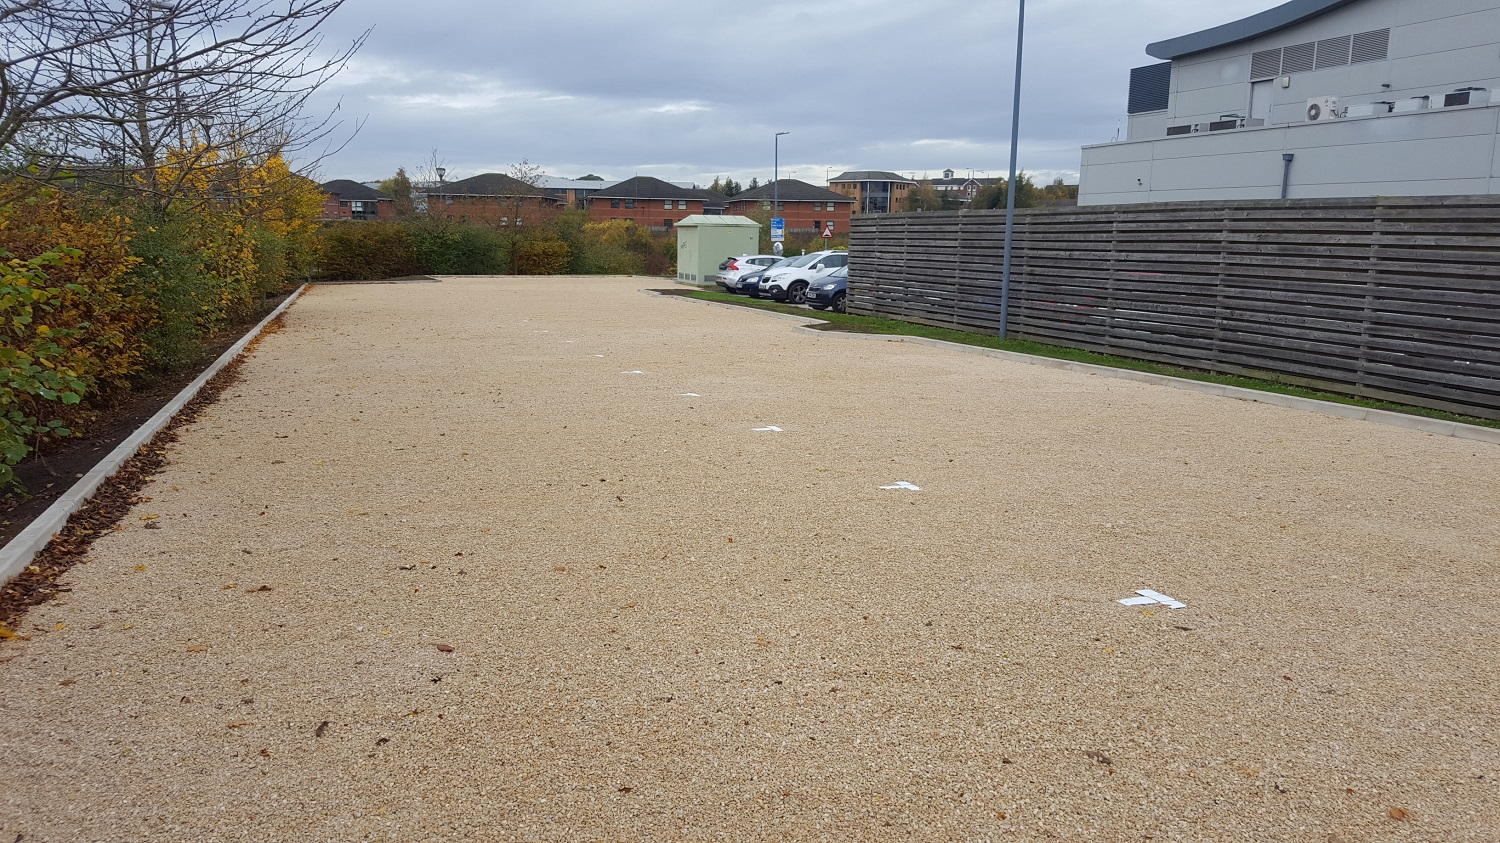 F25 Construction and Gravel Grids to Car Park Extension at NHS Treatment Centre in Barlborough